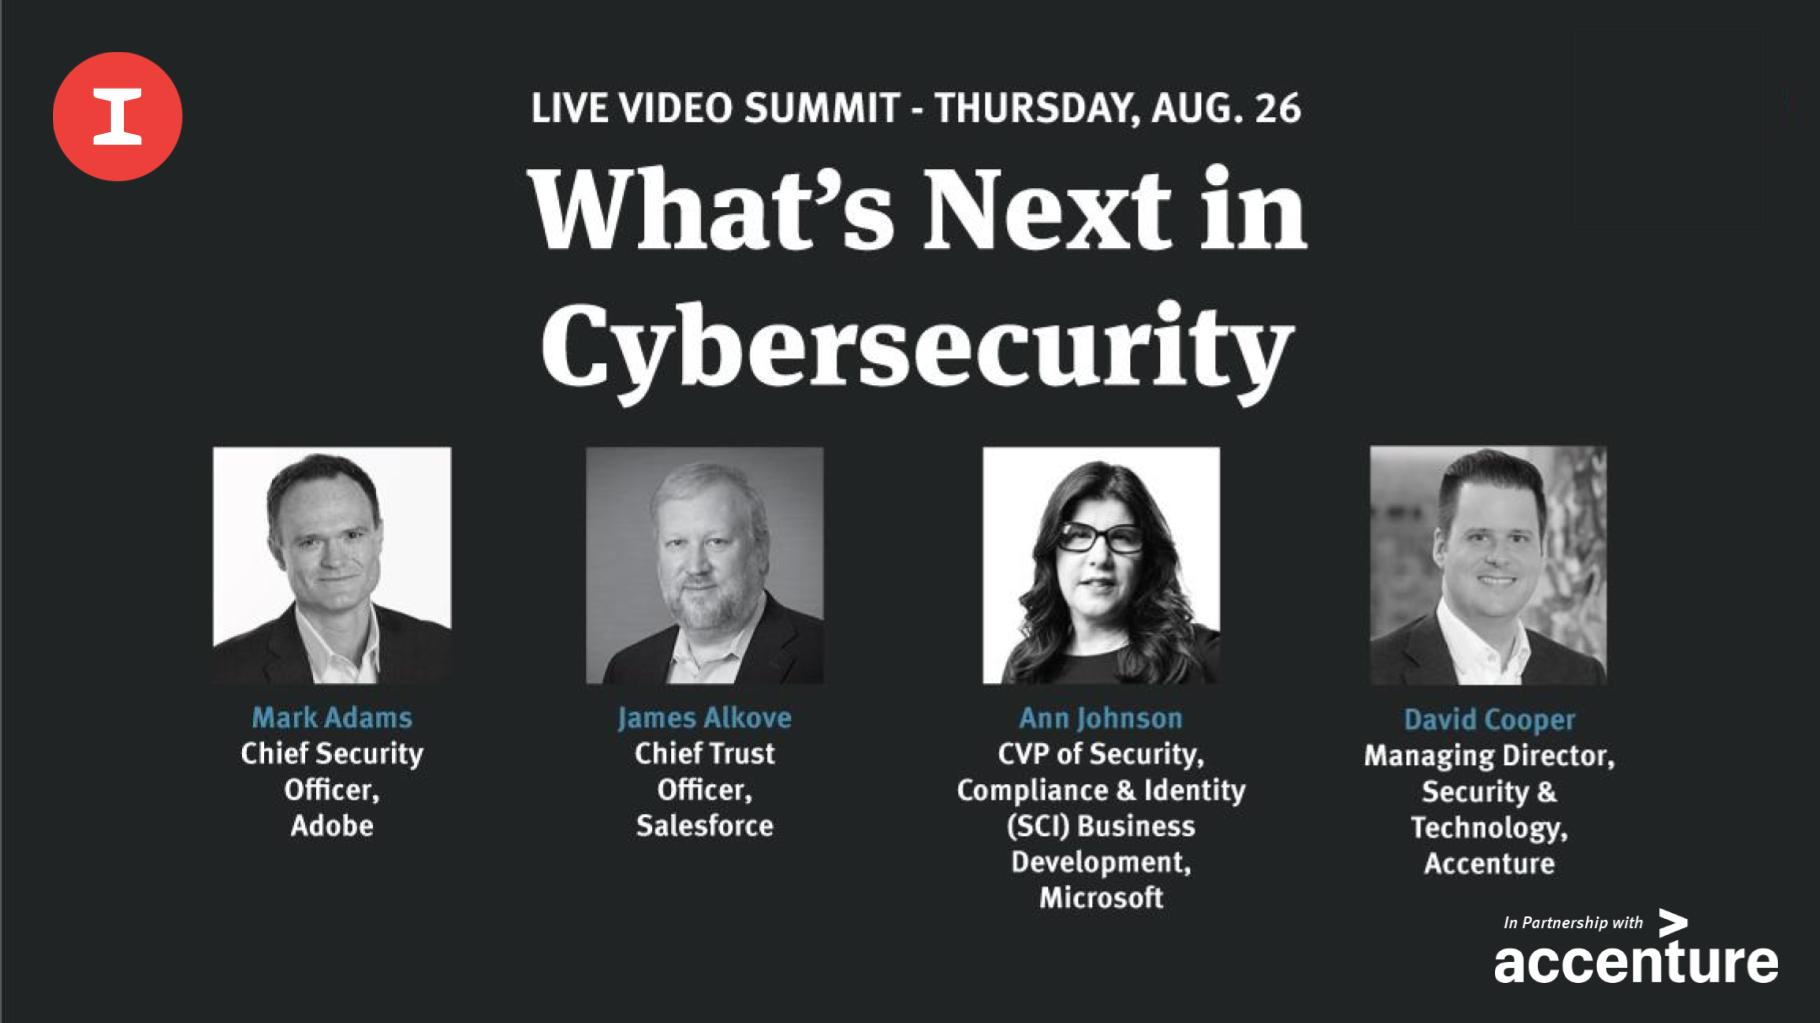 What's Next in Cybersecurity